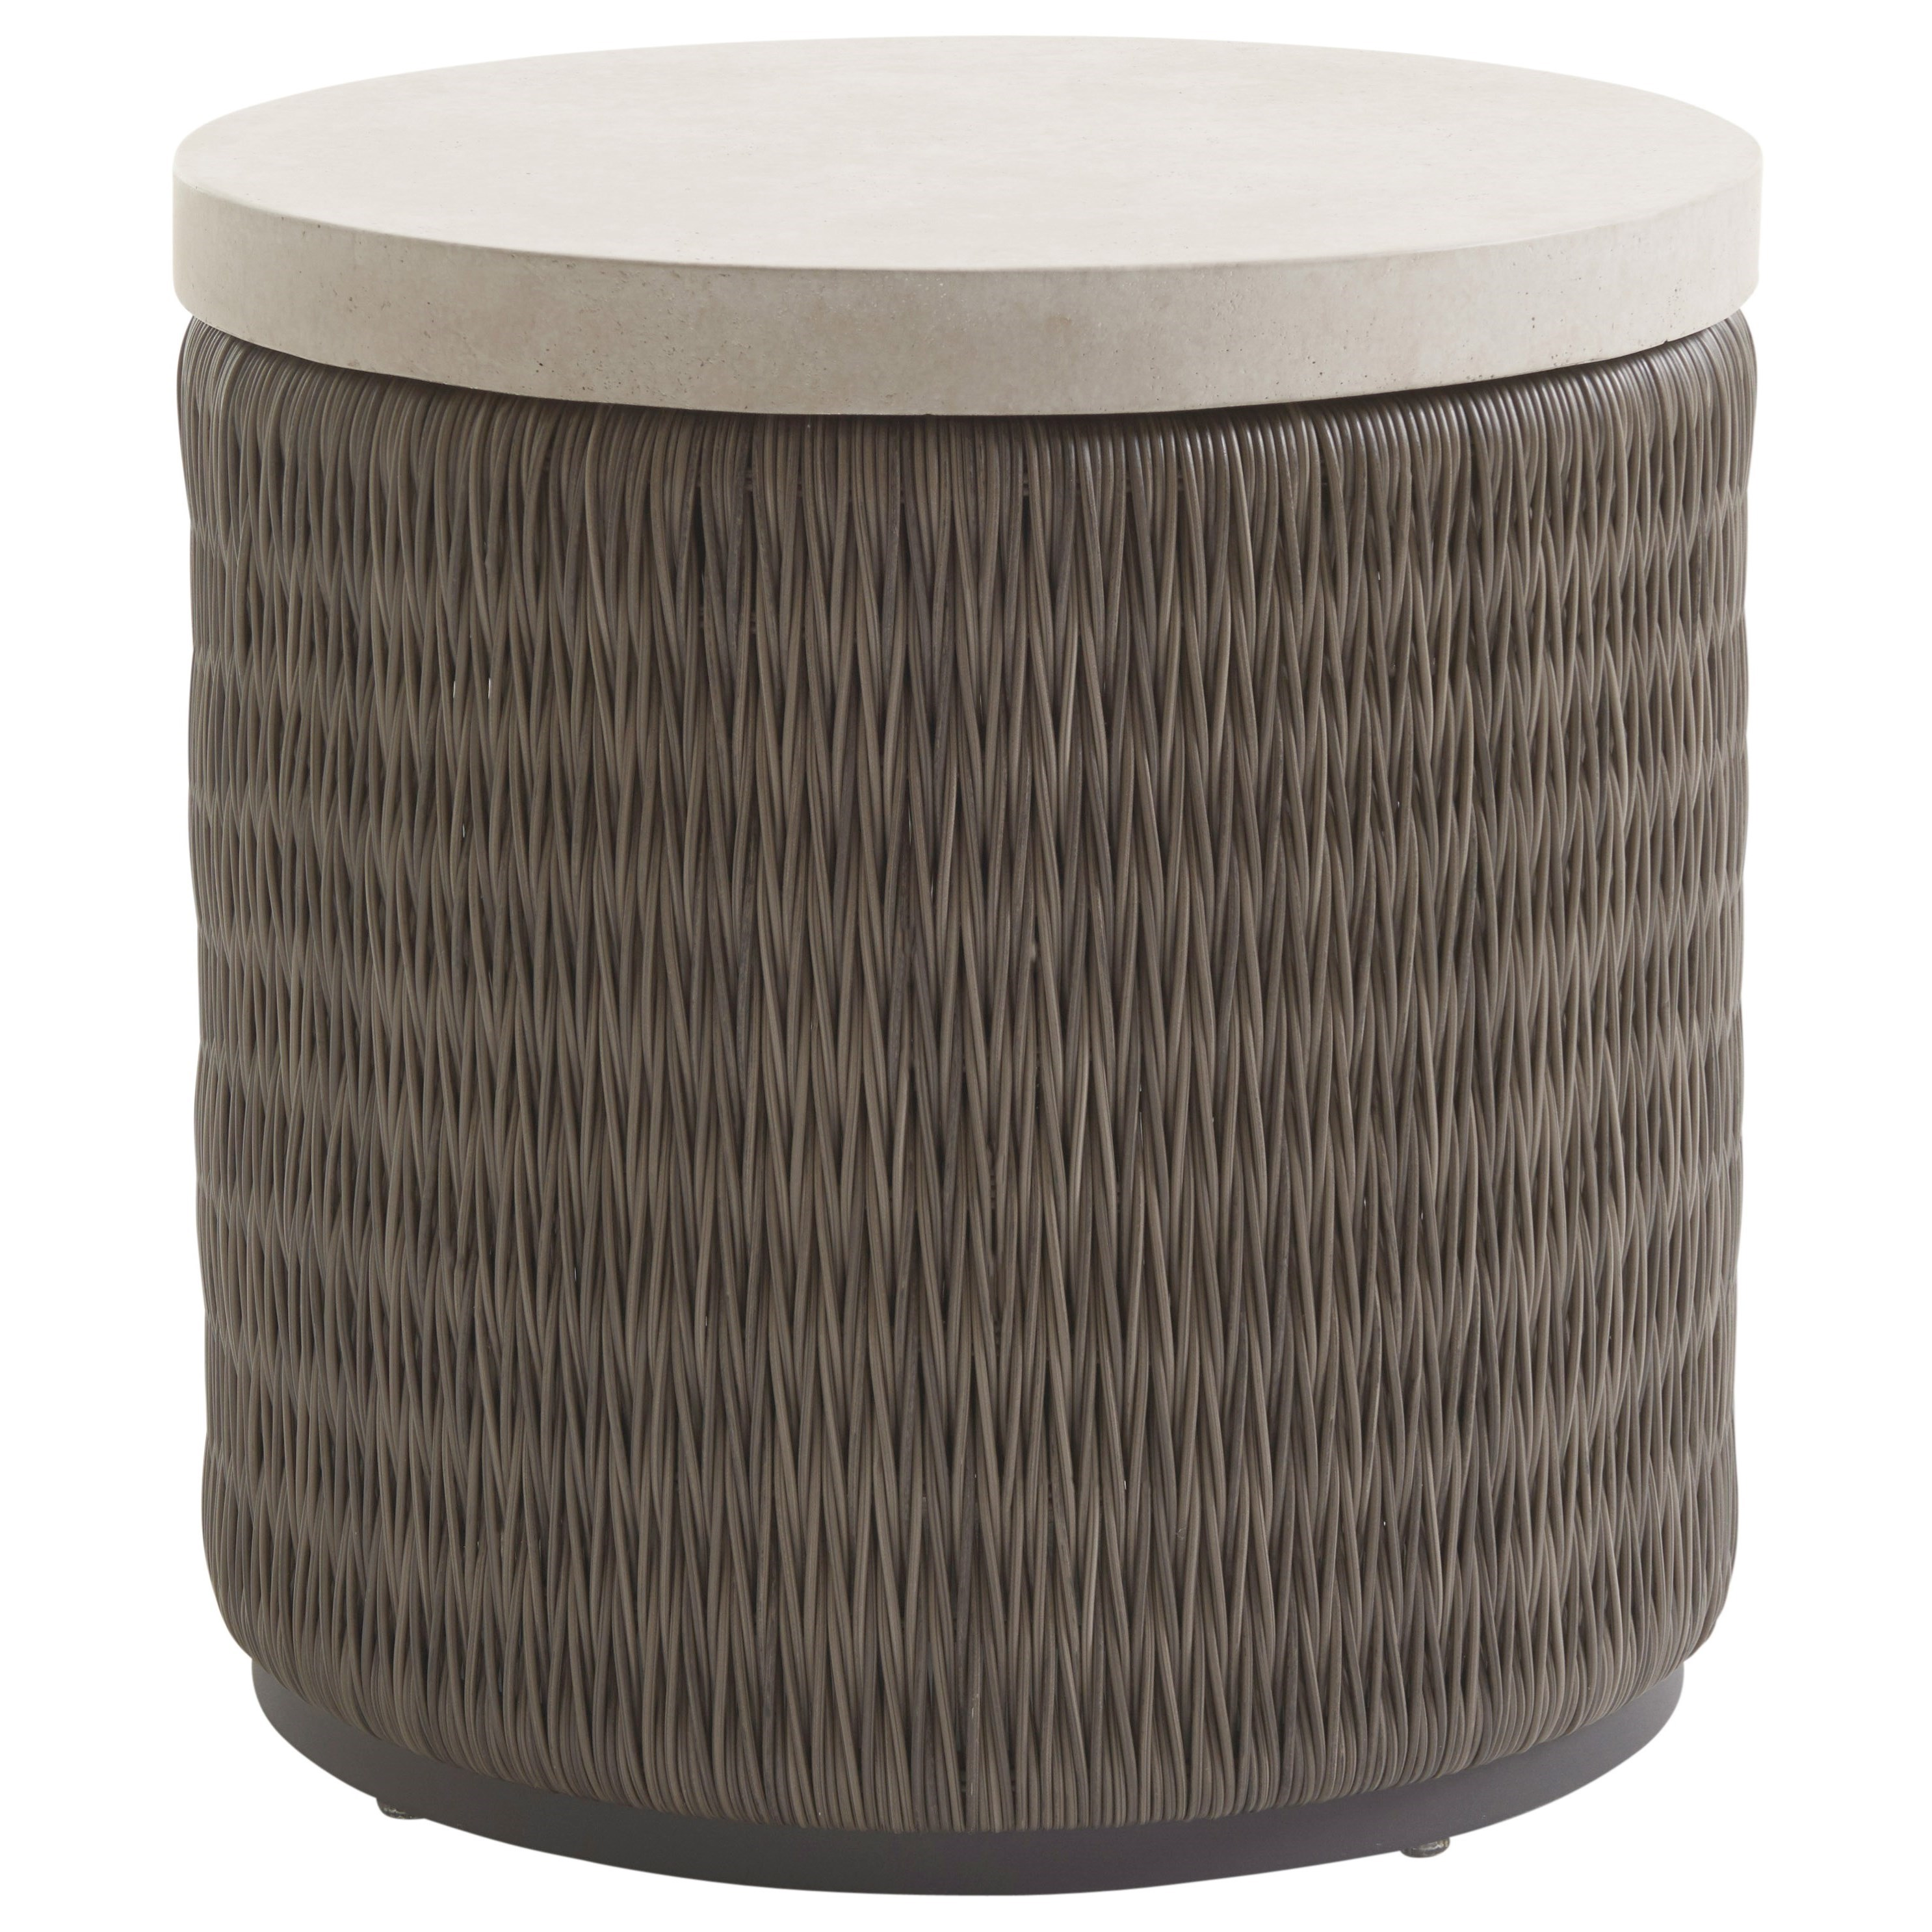 Cypress Point Ocean Terrace Round End Table with Weatherstone Top by Tommy Bahama Outdoor Living at Baer's Furniture